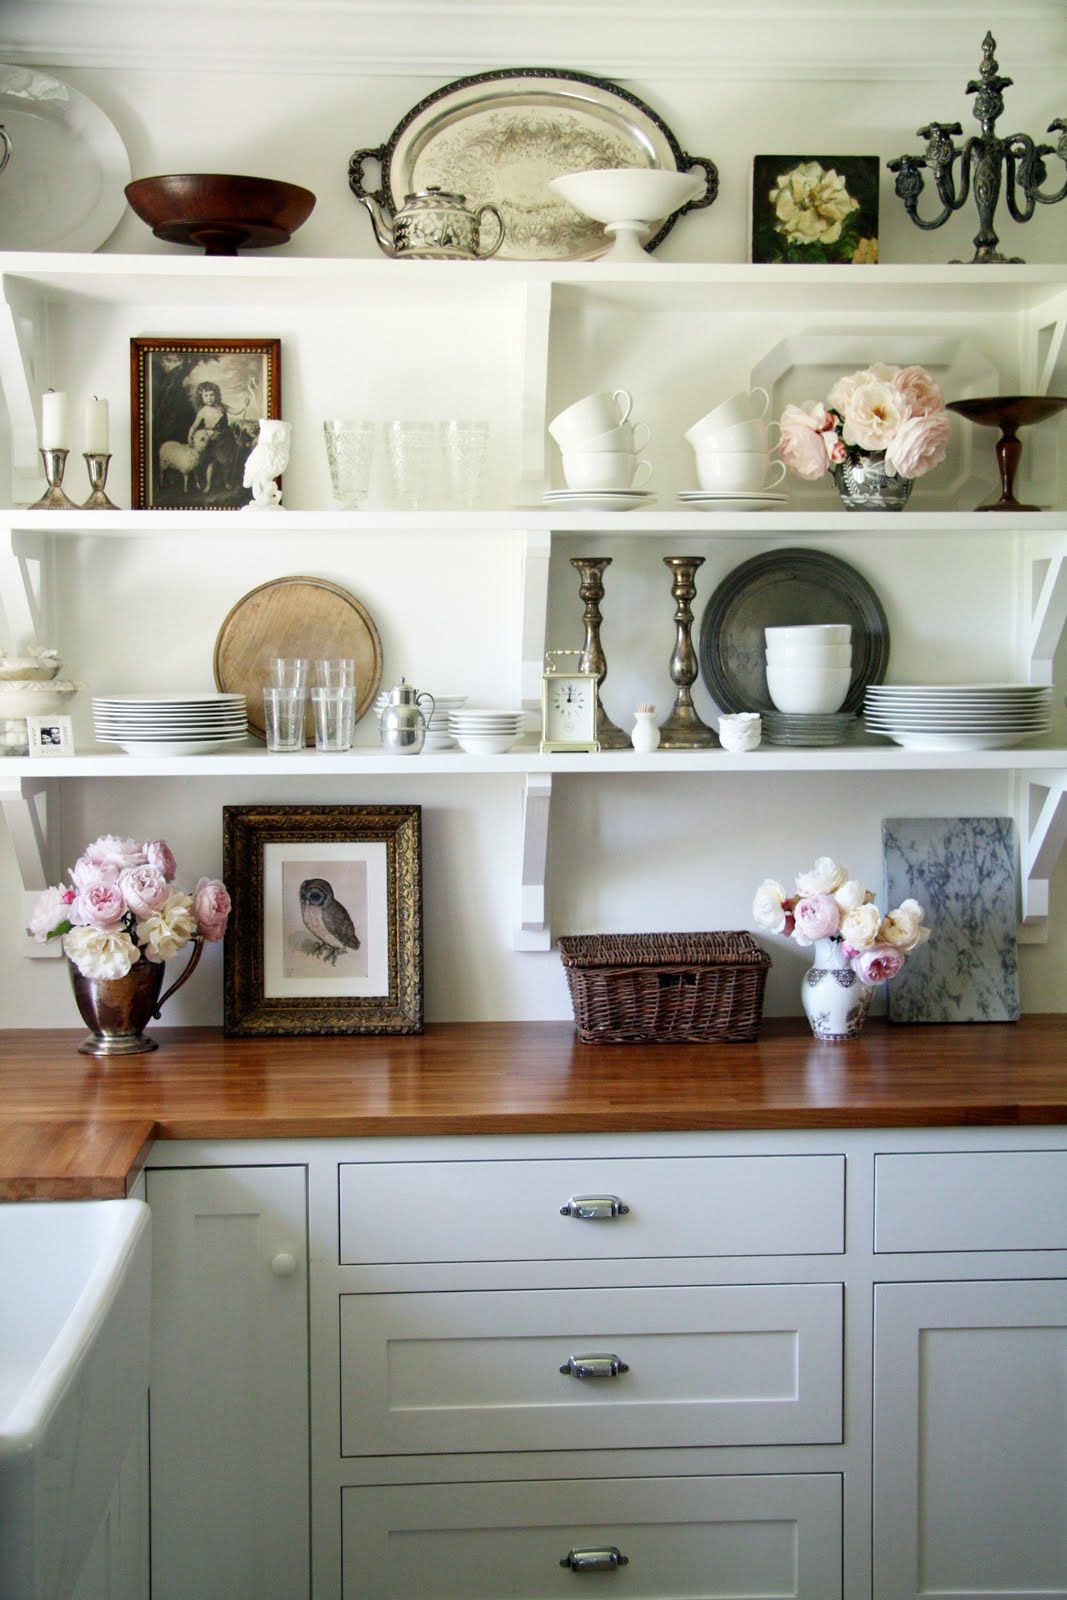 Kitchen Open Shelves Open Shelving Is Kitchen This Is Beautiful And Gives Me An Idea